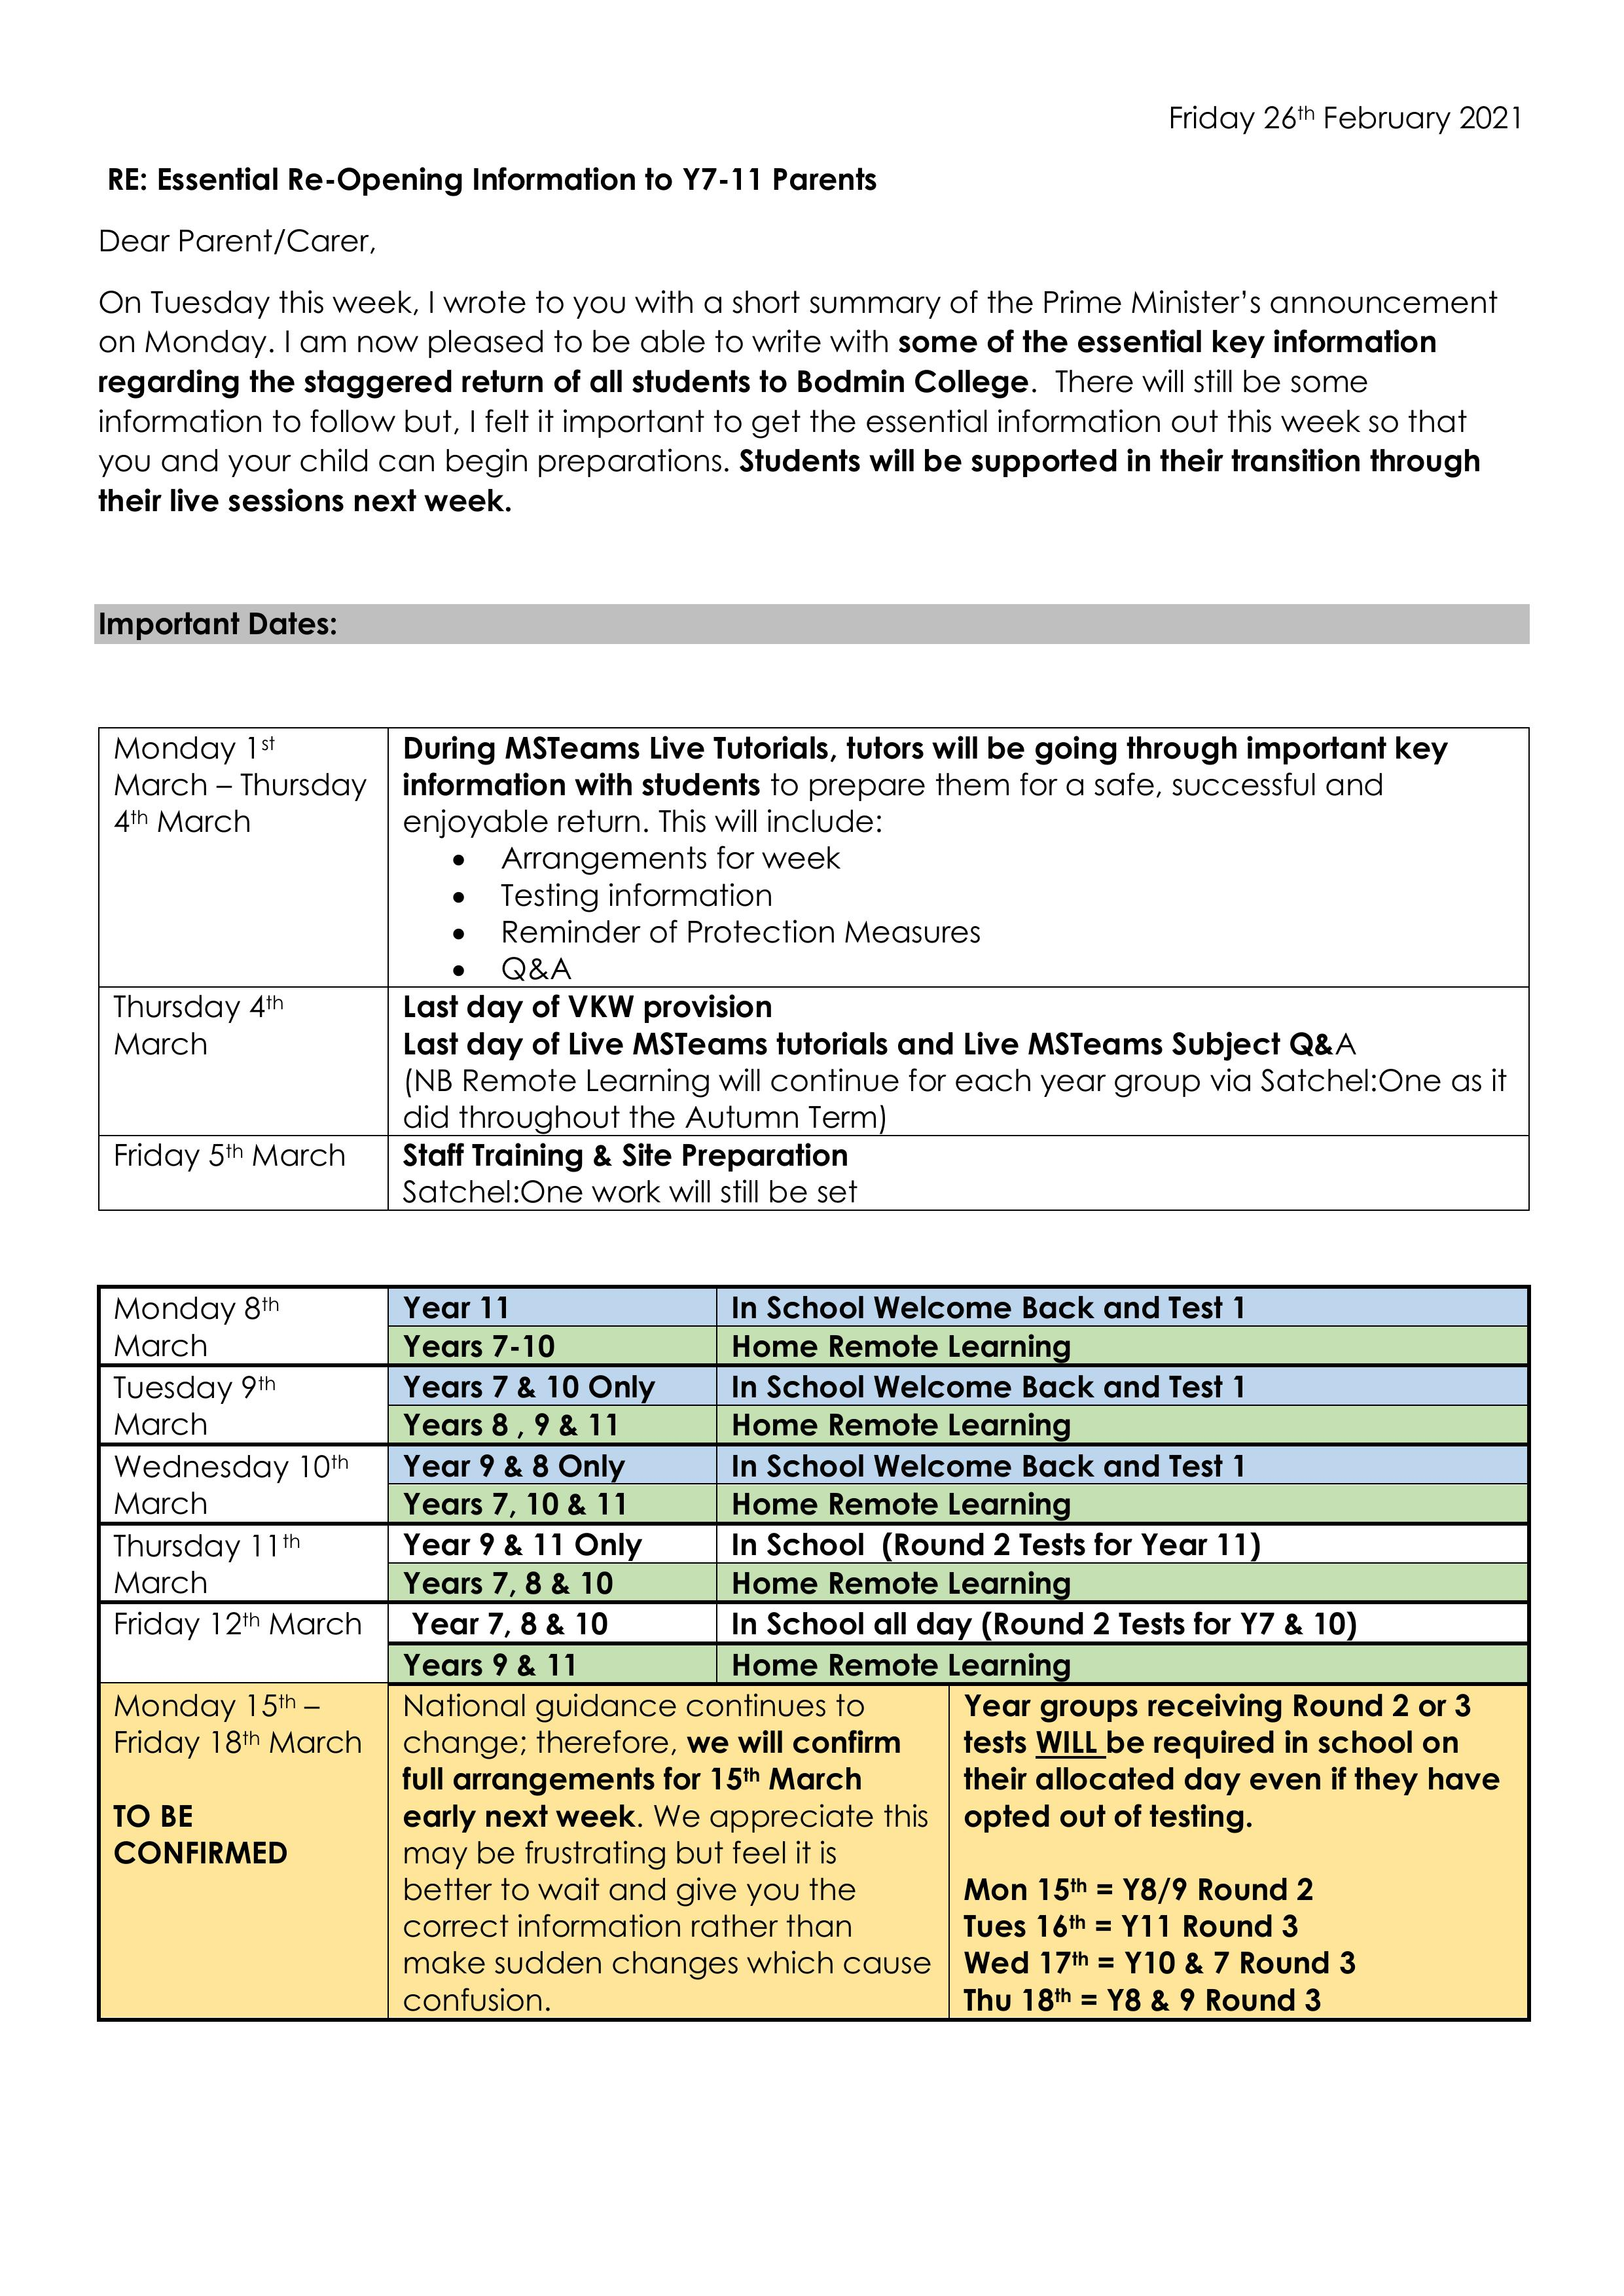 Essential Info to Parents 26Feb21 Final-1